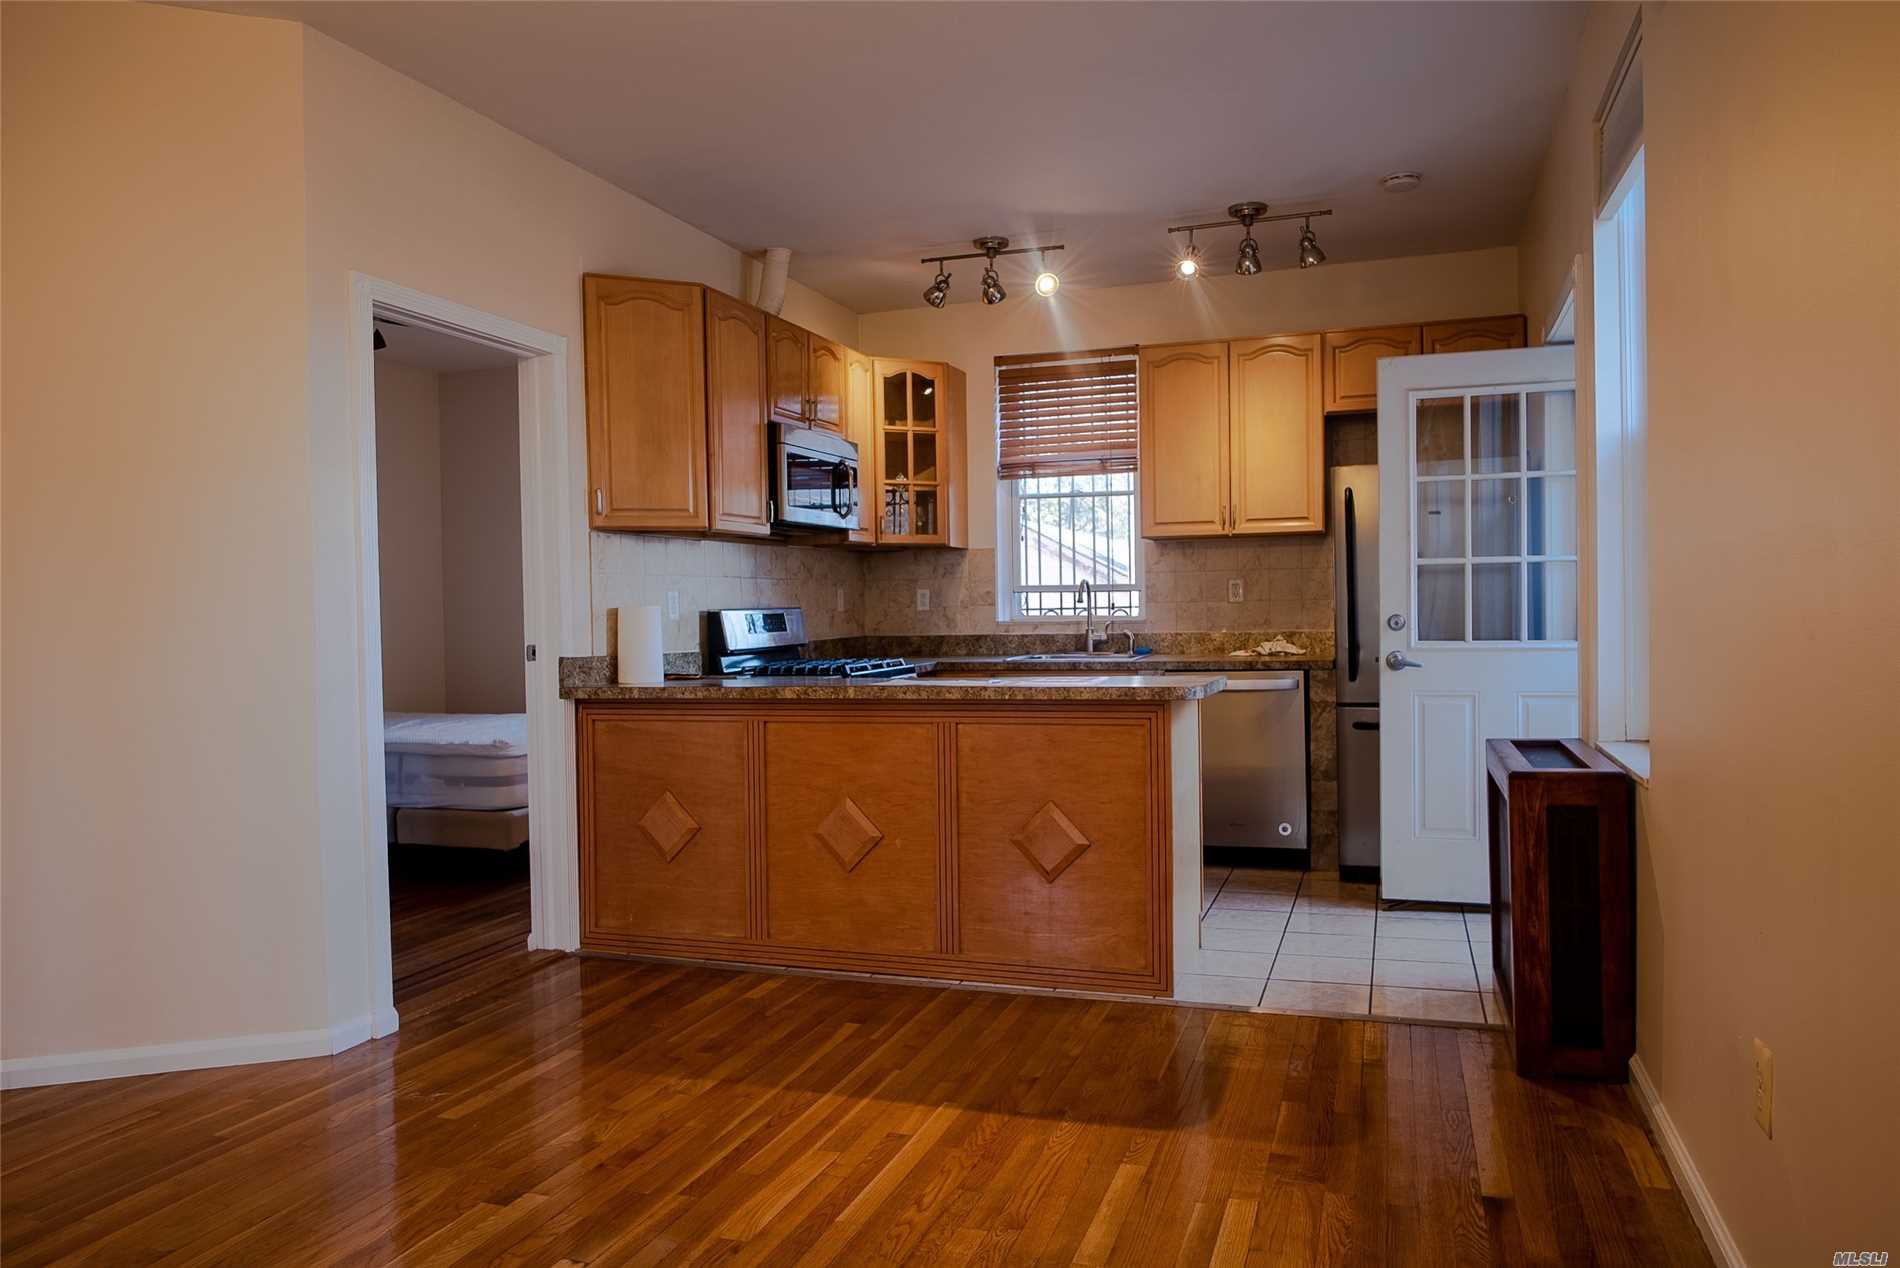 Beautiful, Sunlit 2 Bedroom In The Heart Of Astoria. Wood Floors Throughout. King Size Master Bedroom With Wall To Wall Closets. 400 Sq Ft Fully Fenced Private Outdoor Patio Space. Ductless Unit For Ac And Heat. Bus Stop On Corner(Q69), Q19 Bus Stop 1 Block Away, Less Then 1 Mile To Ditmar's Train Stop (N&W)